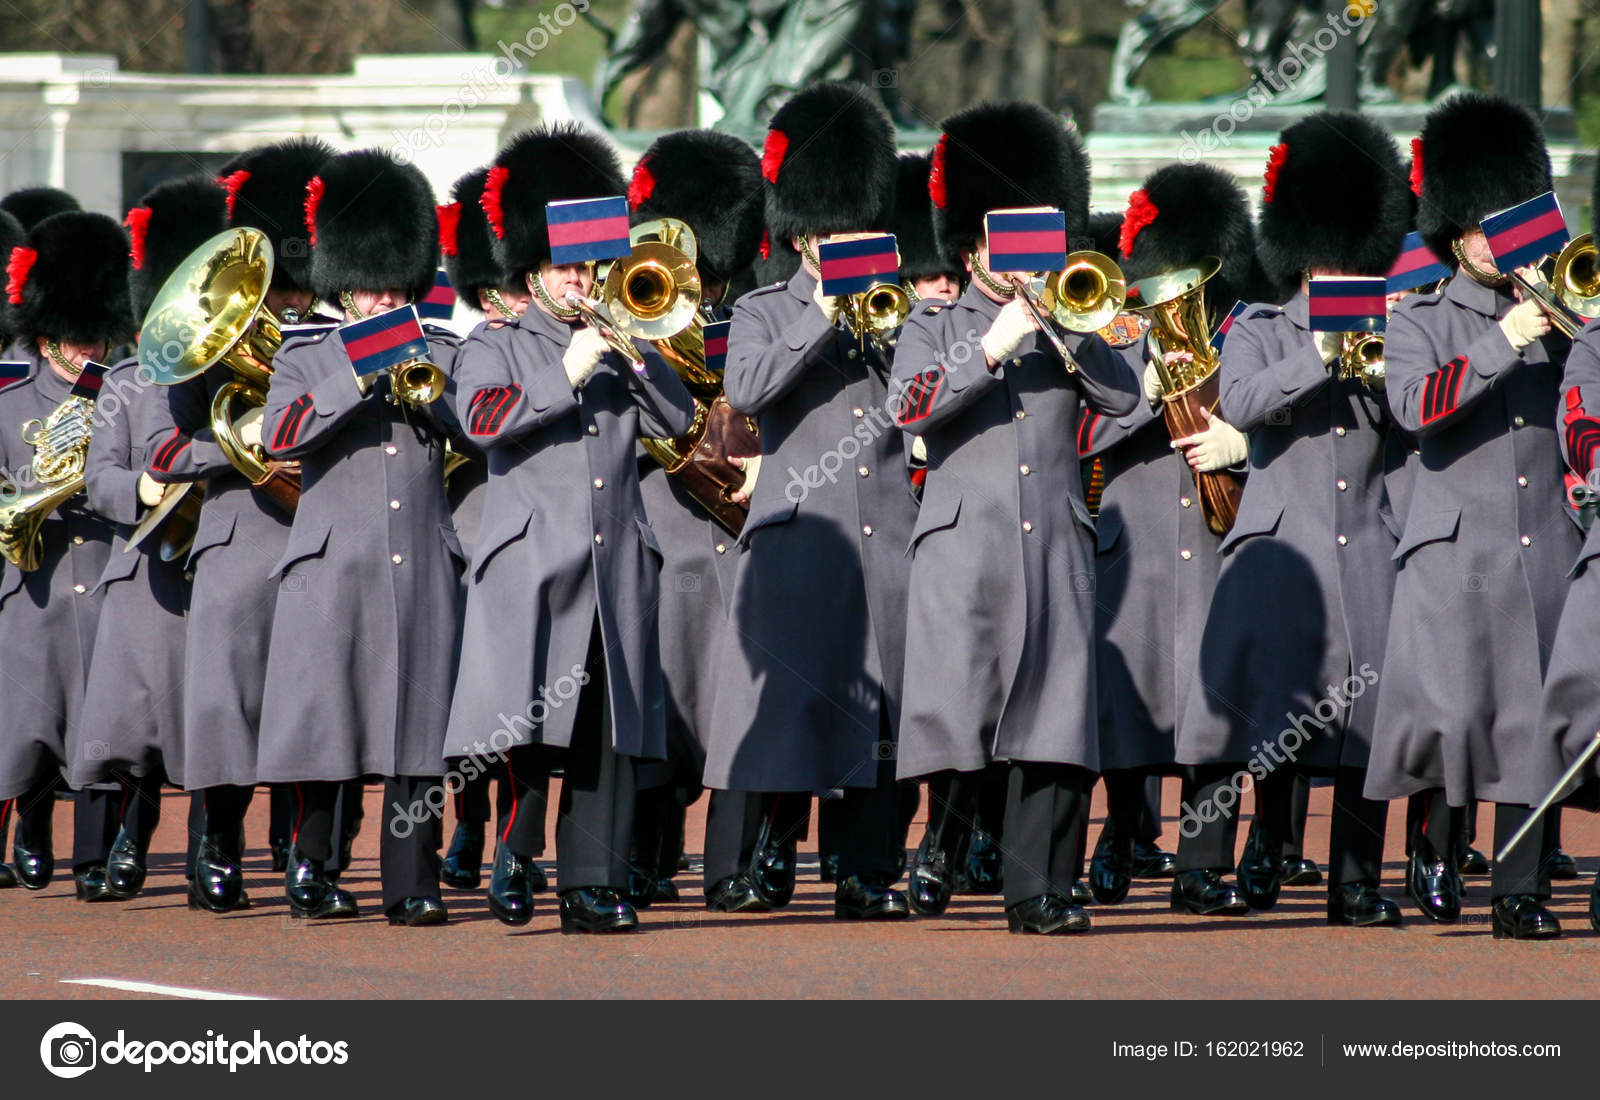 Band of the Queen's Guard – Stock Editorial Photo © pxl